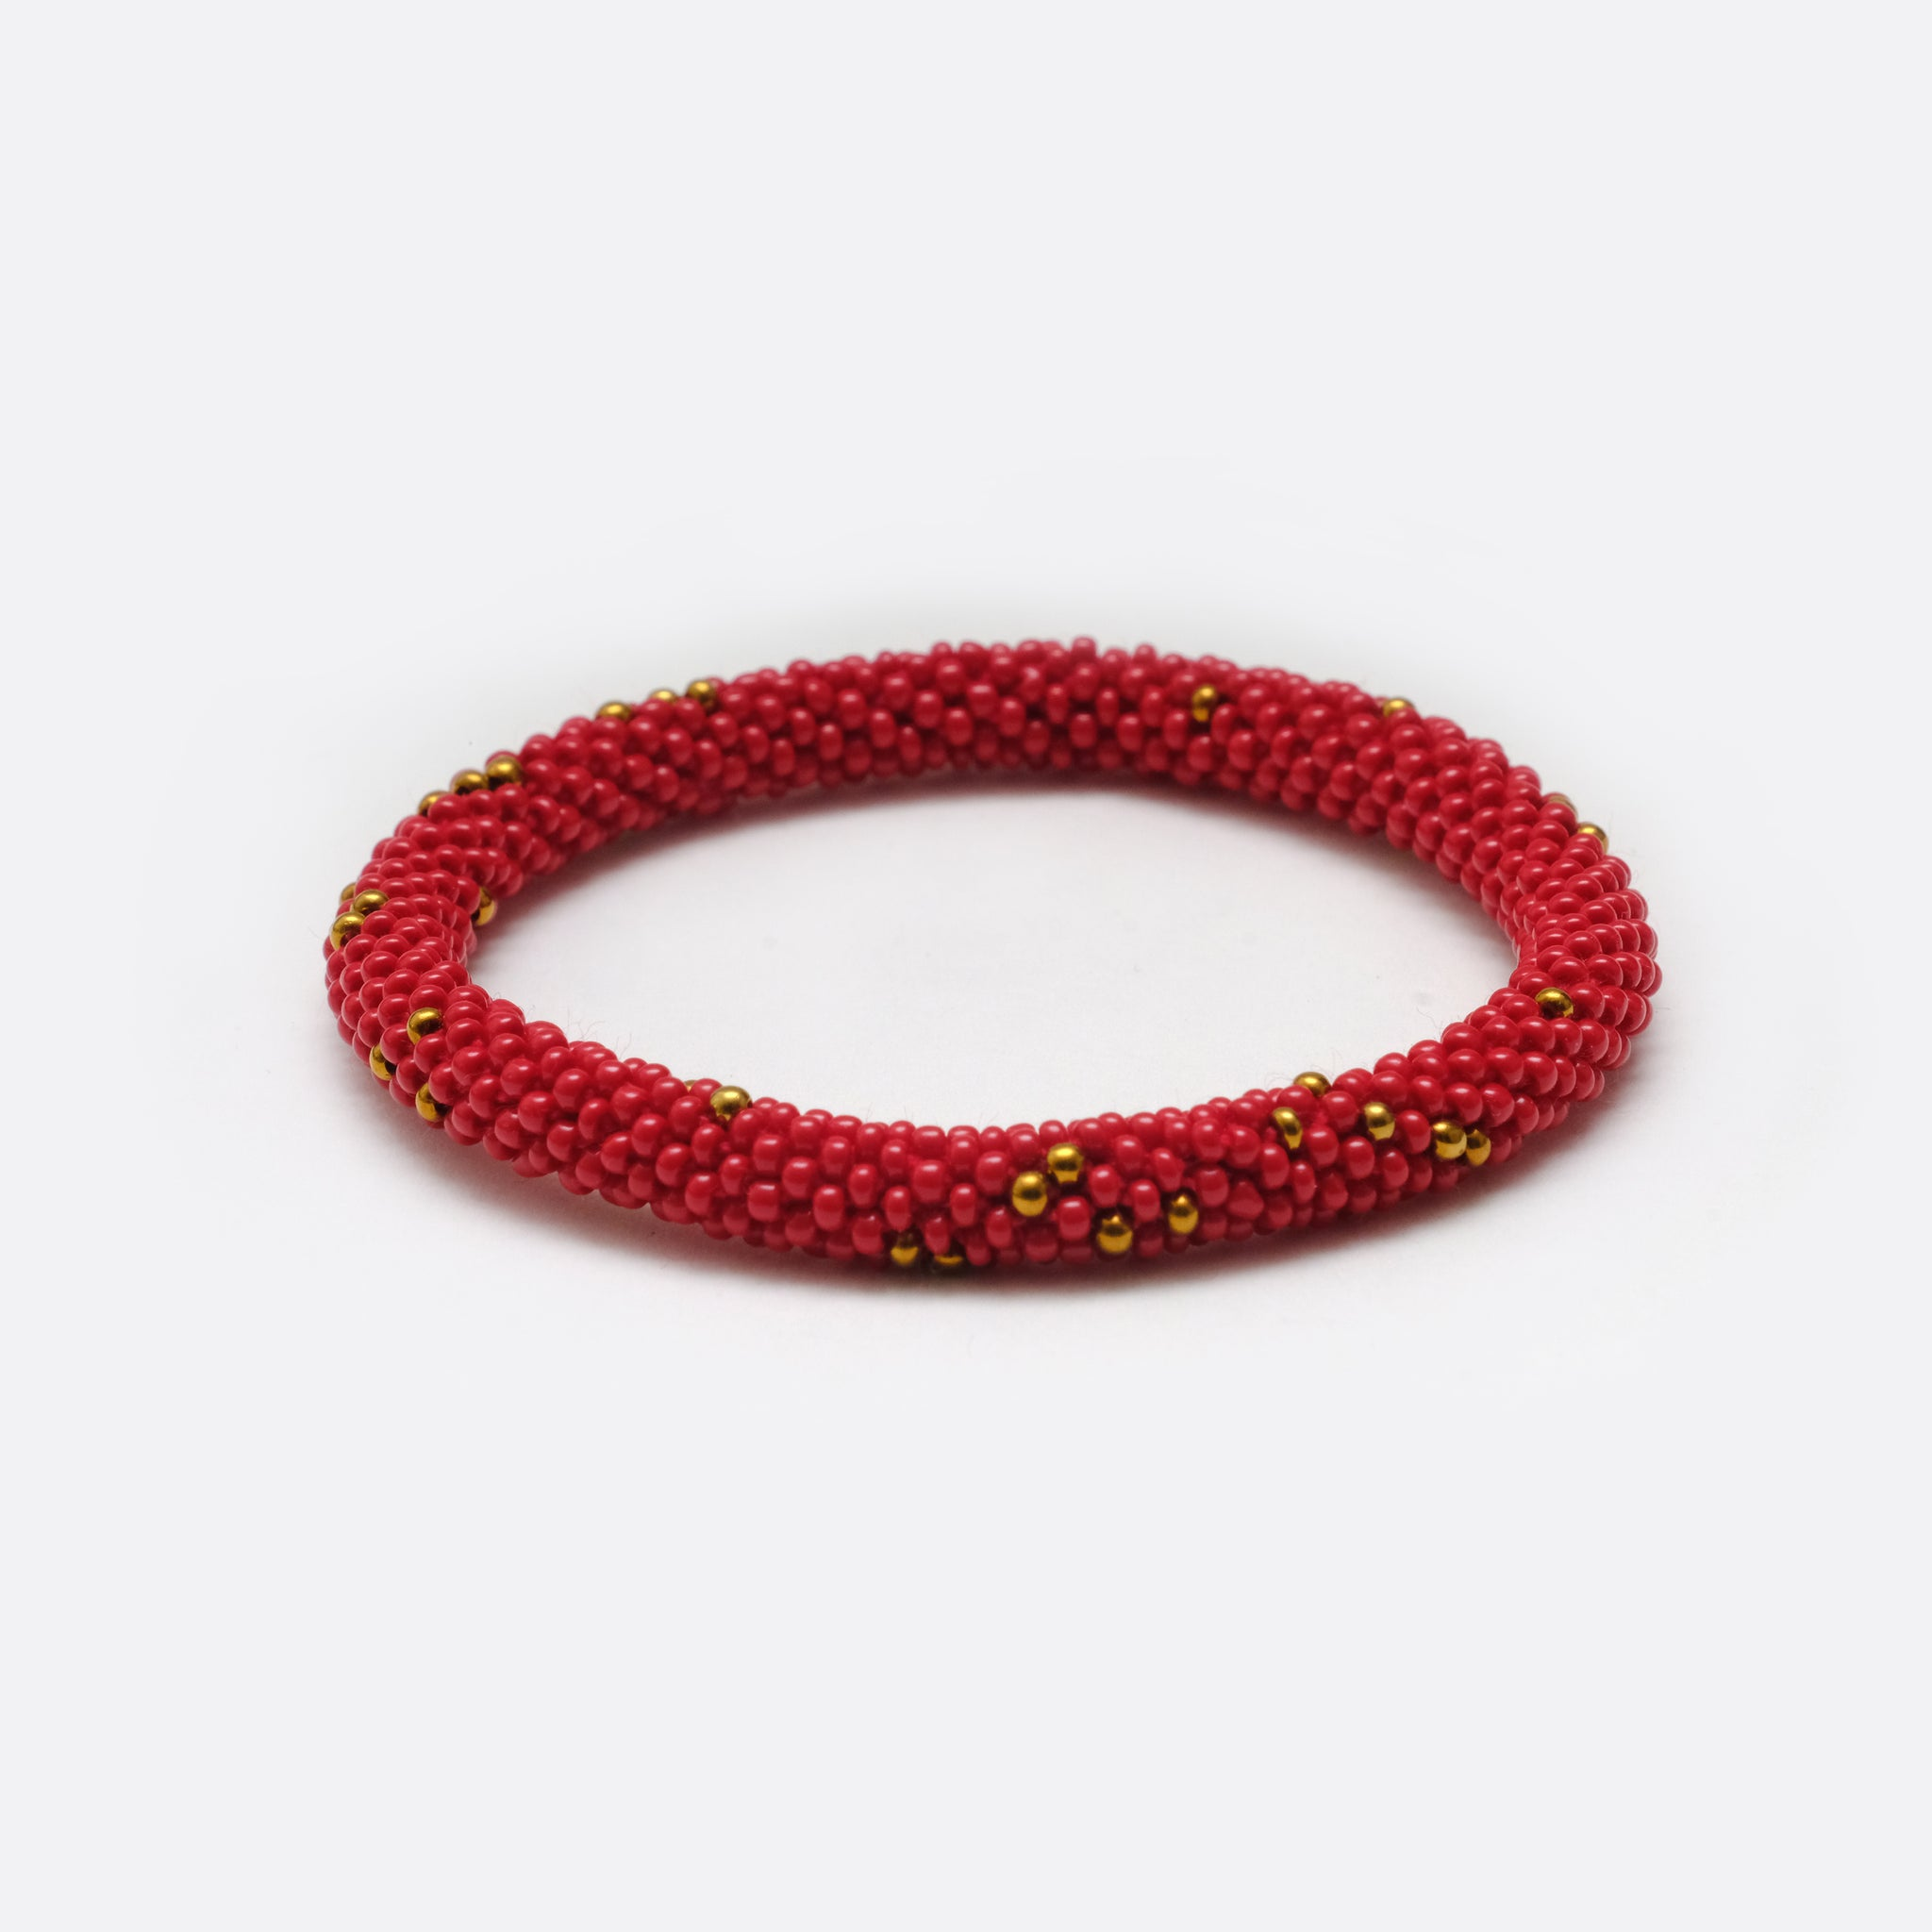 Beaded Bracelet - Red & Golden Dots